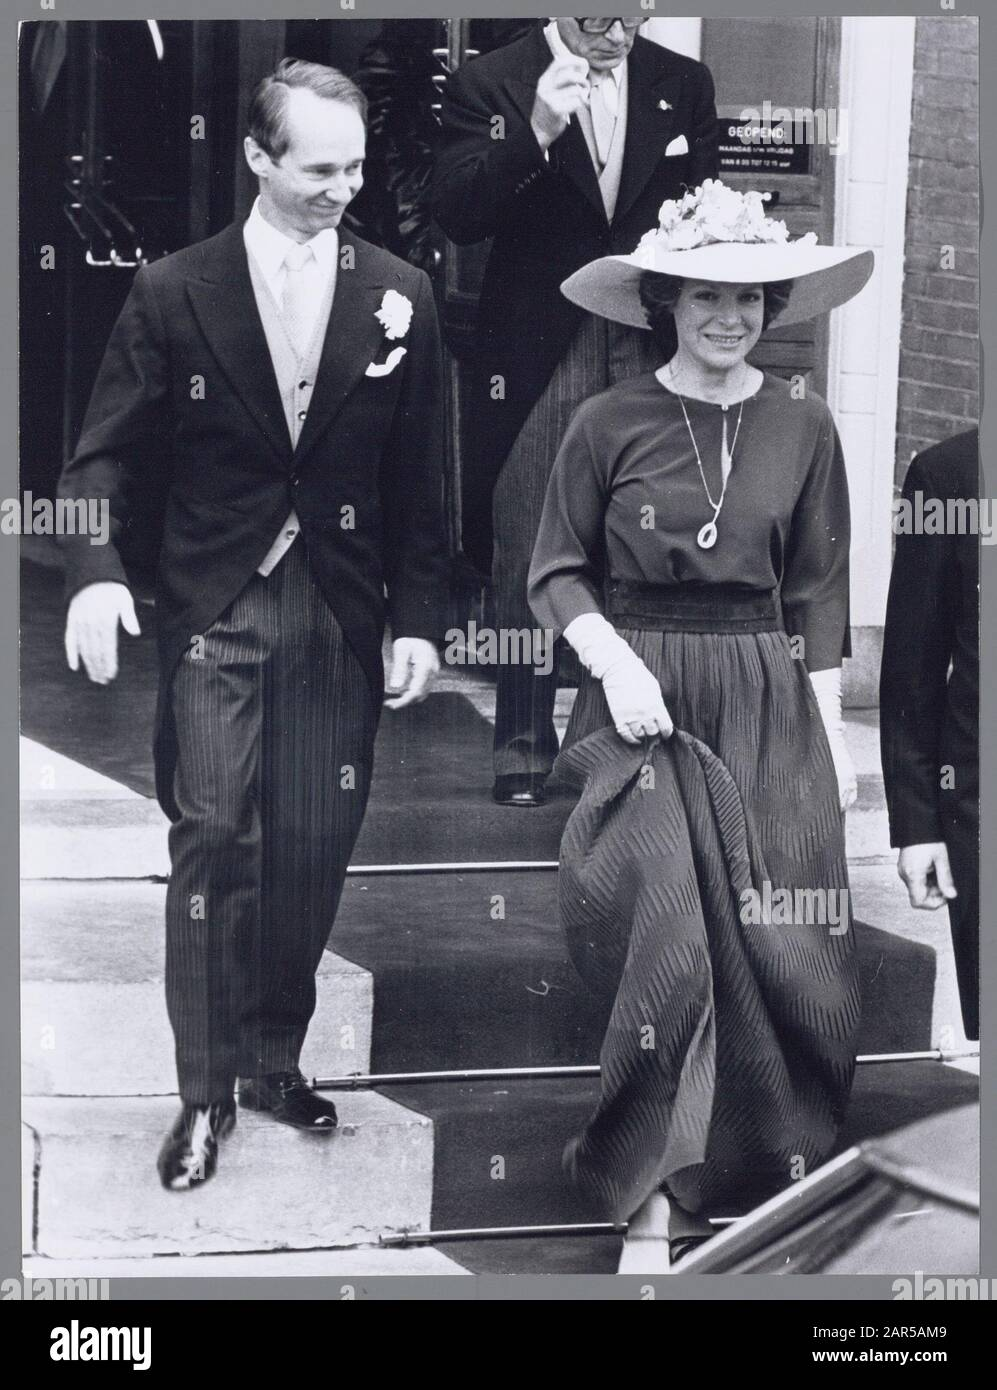 Marriage princess Christina and Jorge Guillermo. Princess Irene and Prince Carel Hugo leave the town hall in Baarn on 28 June 1975 Date: 28 June 1975 Location: Baarn, Utrecht Keywords: marriages, royal house, princesses, princesses Personal name: Carlos Hugo, Prince of Bourbon of Parma, Irene, Princess Stock Photo